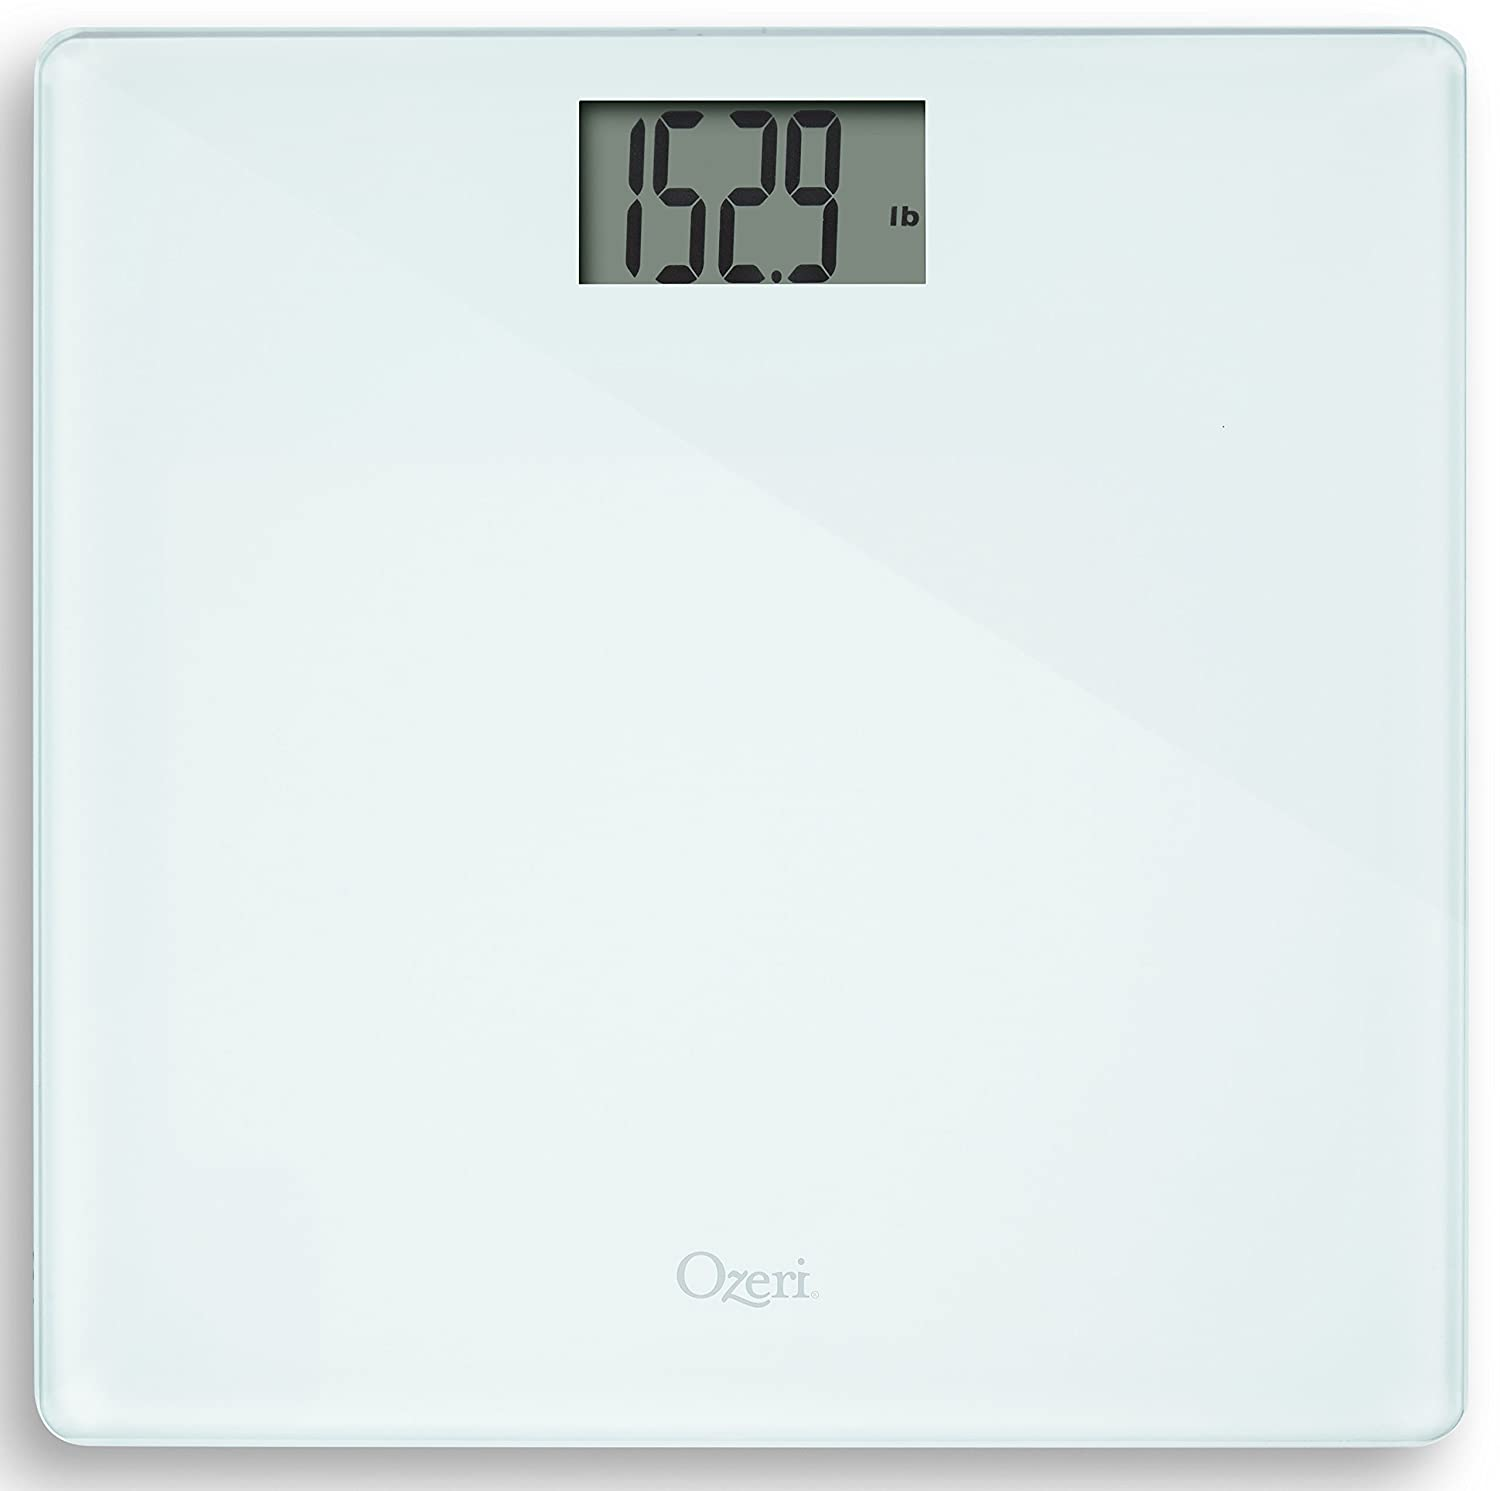 Ozeri Precision Bath Scale (440 lbs / 200 kg) in Tempered Glass, with 50 gram Sensor Technology (0.1 lbs / 0.05 kg) and Infant, Pet & Luggage Tare ZB18-B2